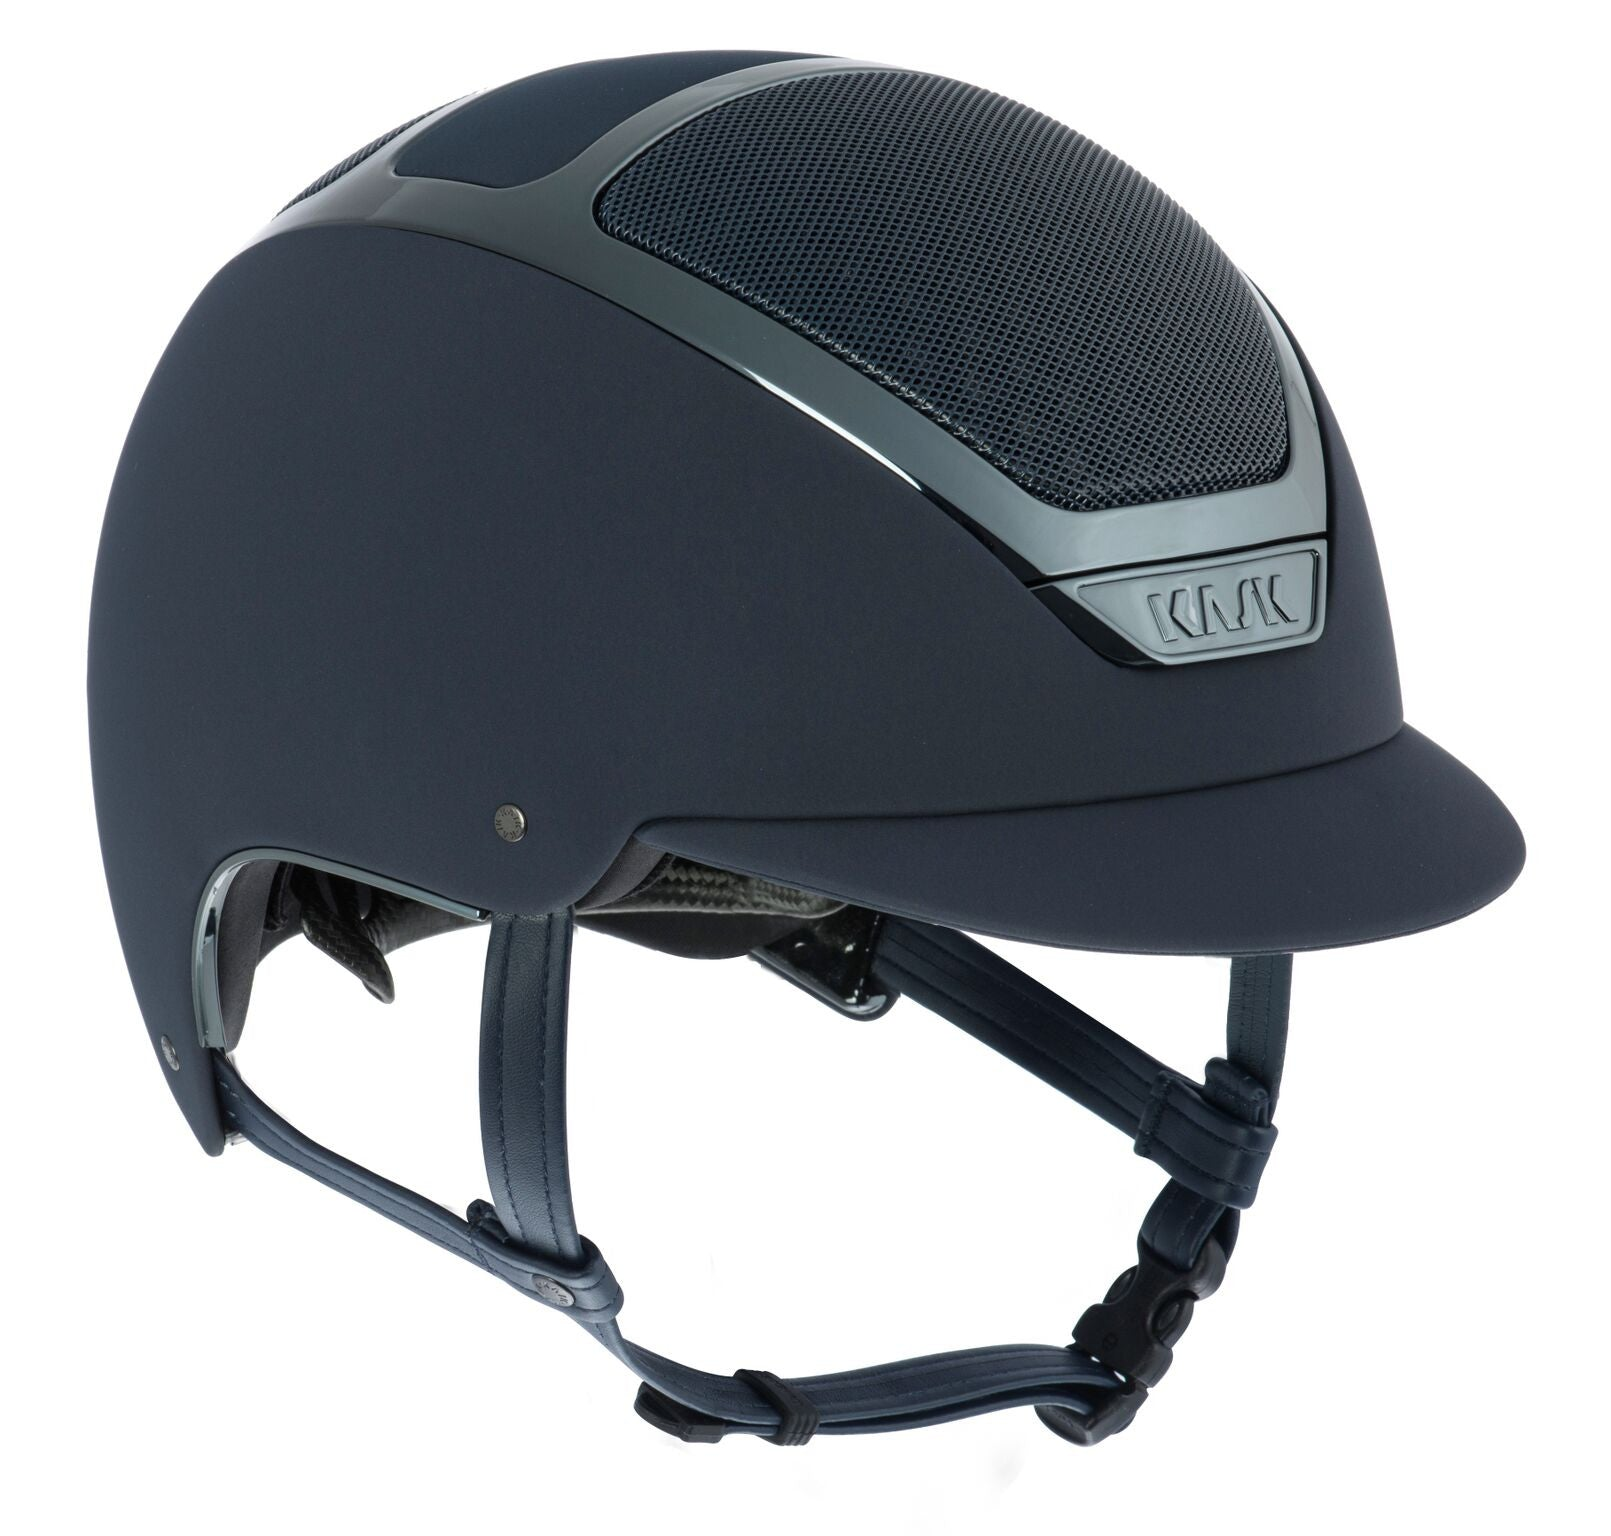 KASK DOGMA CHROME LIGHT - NAVY / NAVY - Divine Equestrian